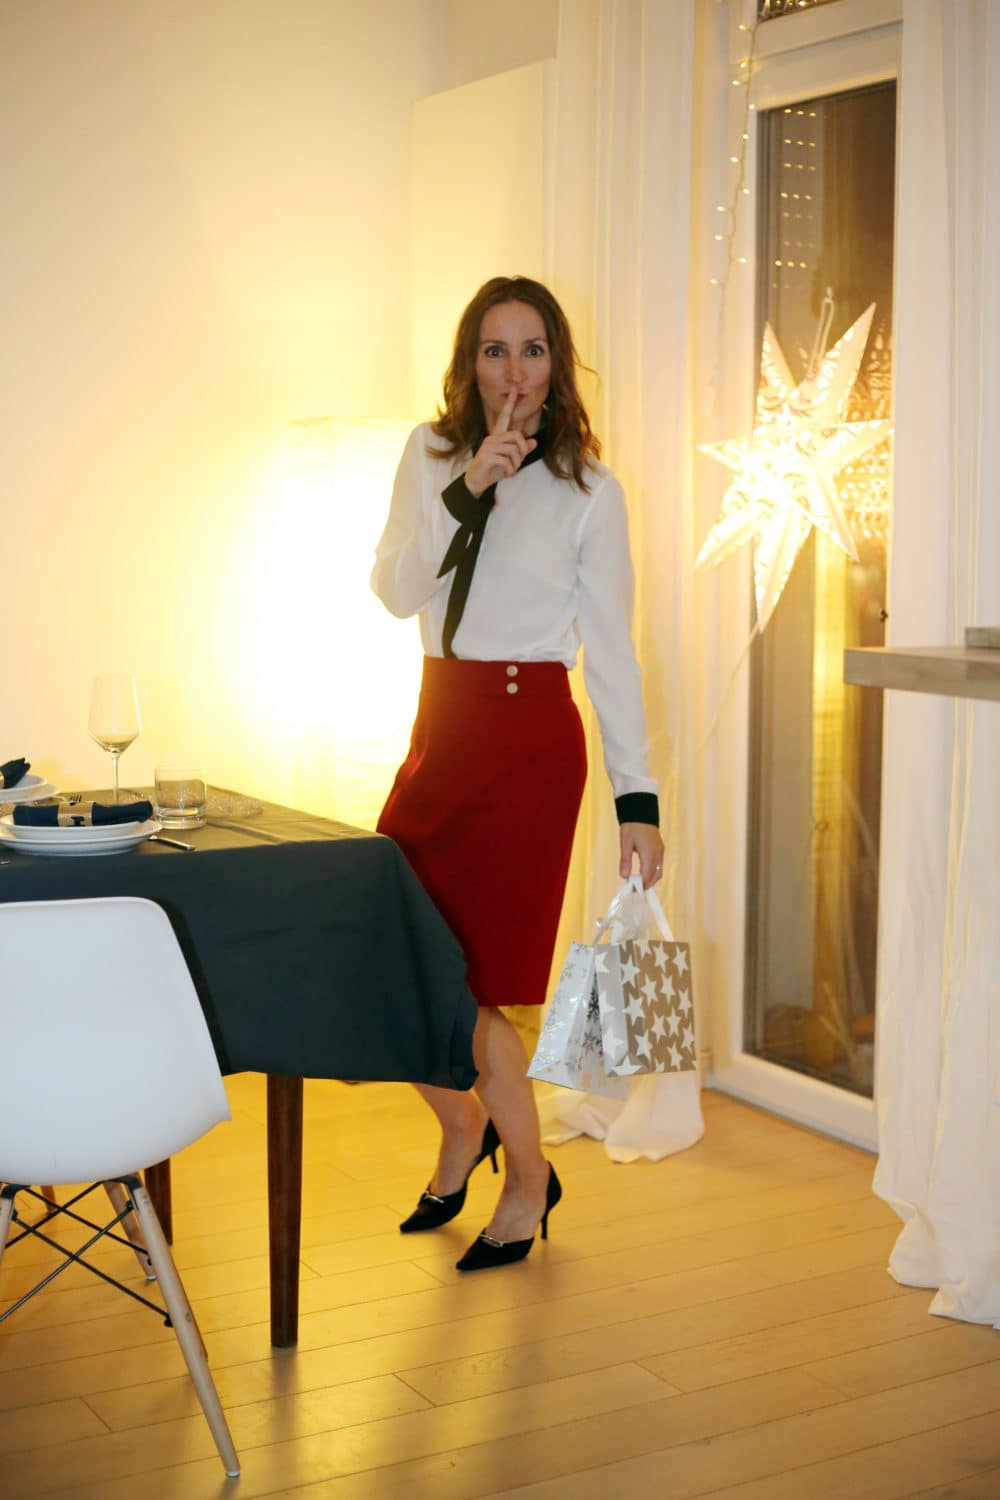 Kleinigkeiten Weihnachten-weihnachtsoutfit_damen_hugo-boss_bleistift-rock-rot_bluse_weiss_satin-pumps_mode-blog_ü50_oceanblue-style-_frankfurt (2)